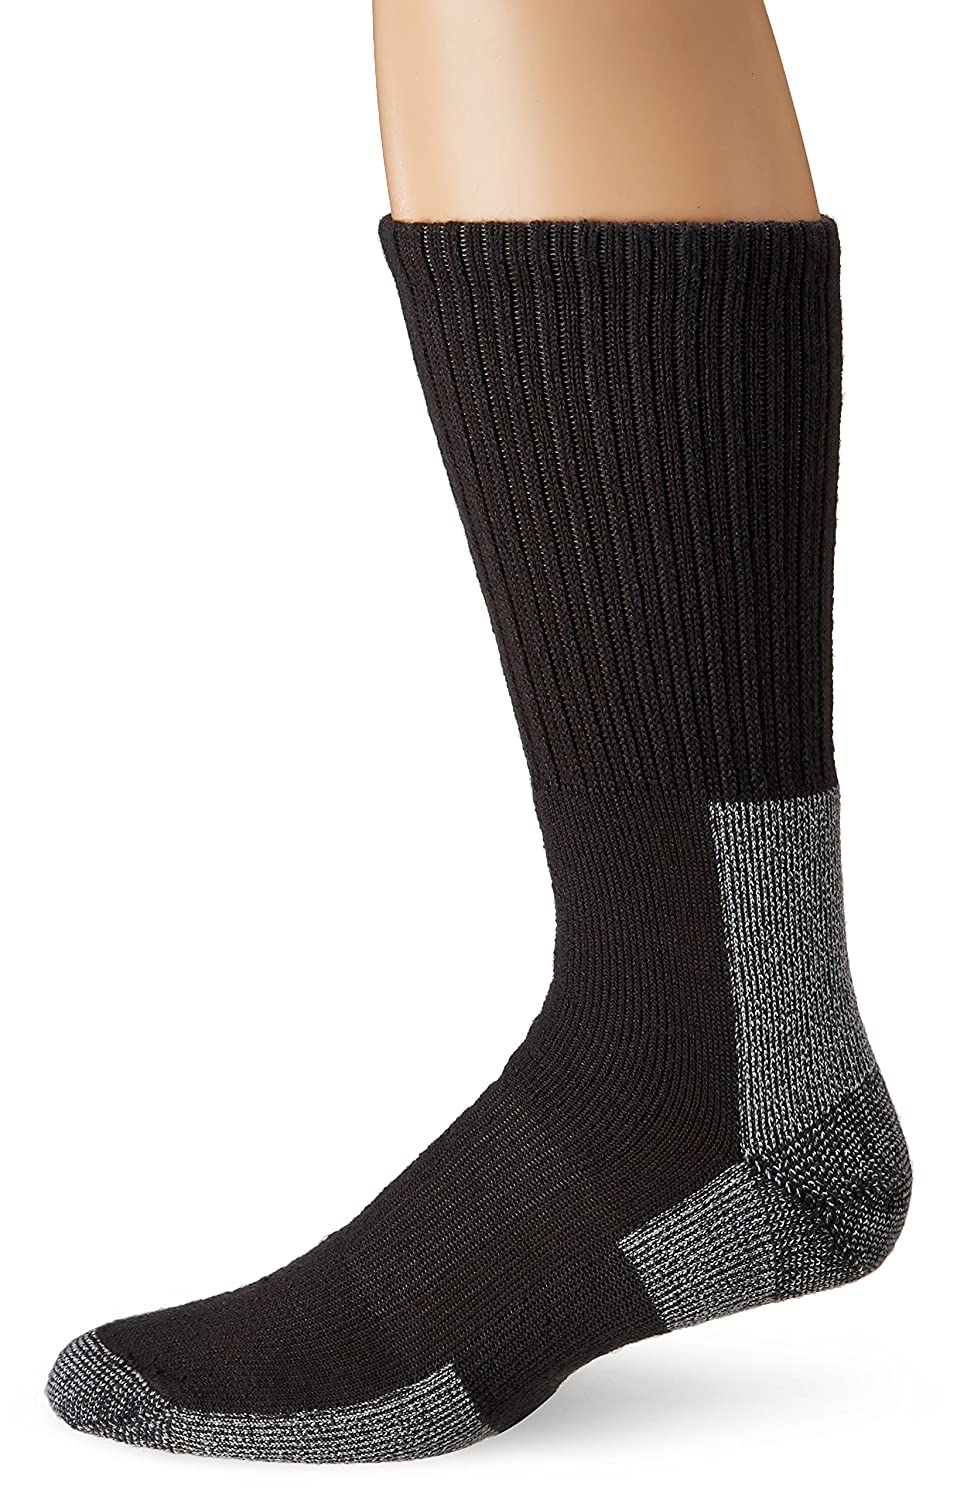 Thorlos mens standard Thorlos Trail Hiking Moderate Padded Crew Socks